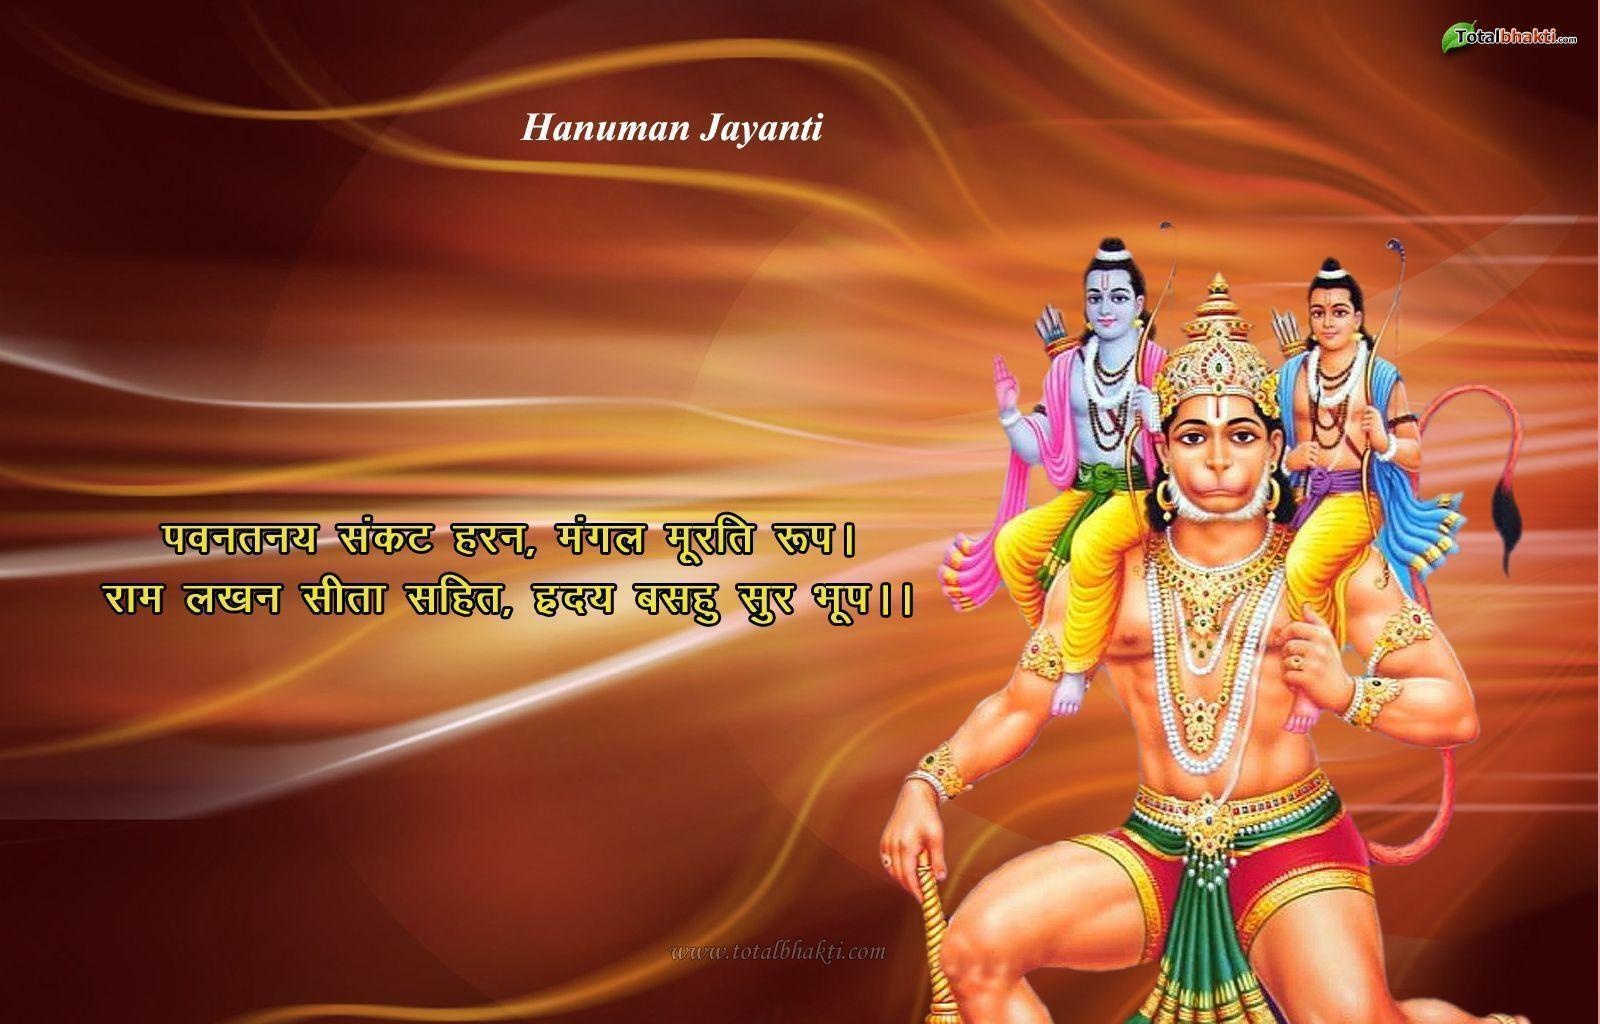 hanuman wallpaper, Hindu wallpaper, Hanuman Jayanti Wallpapers